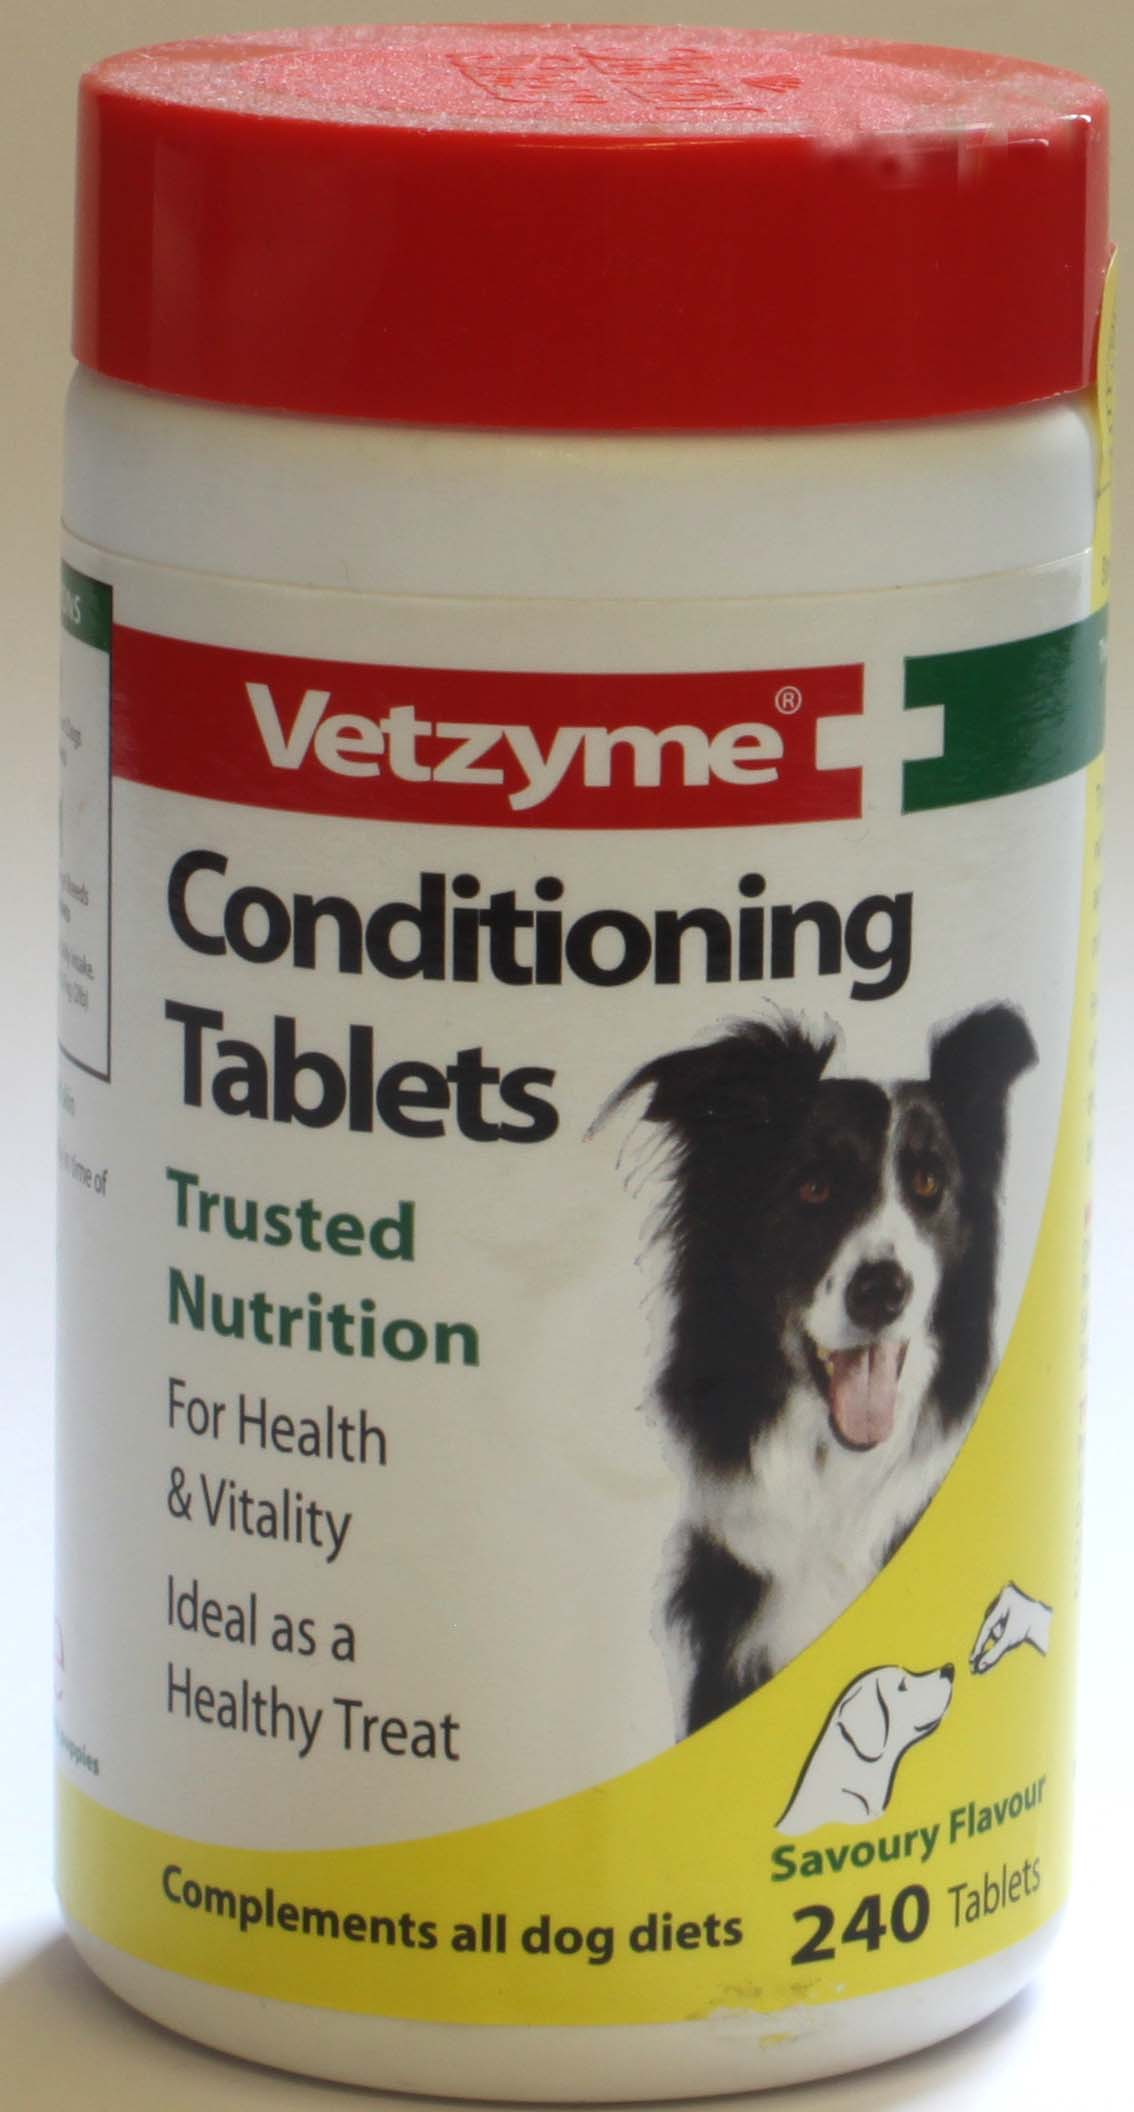 Vetzyme Conditioning Tablets - 240 tablets